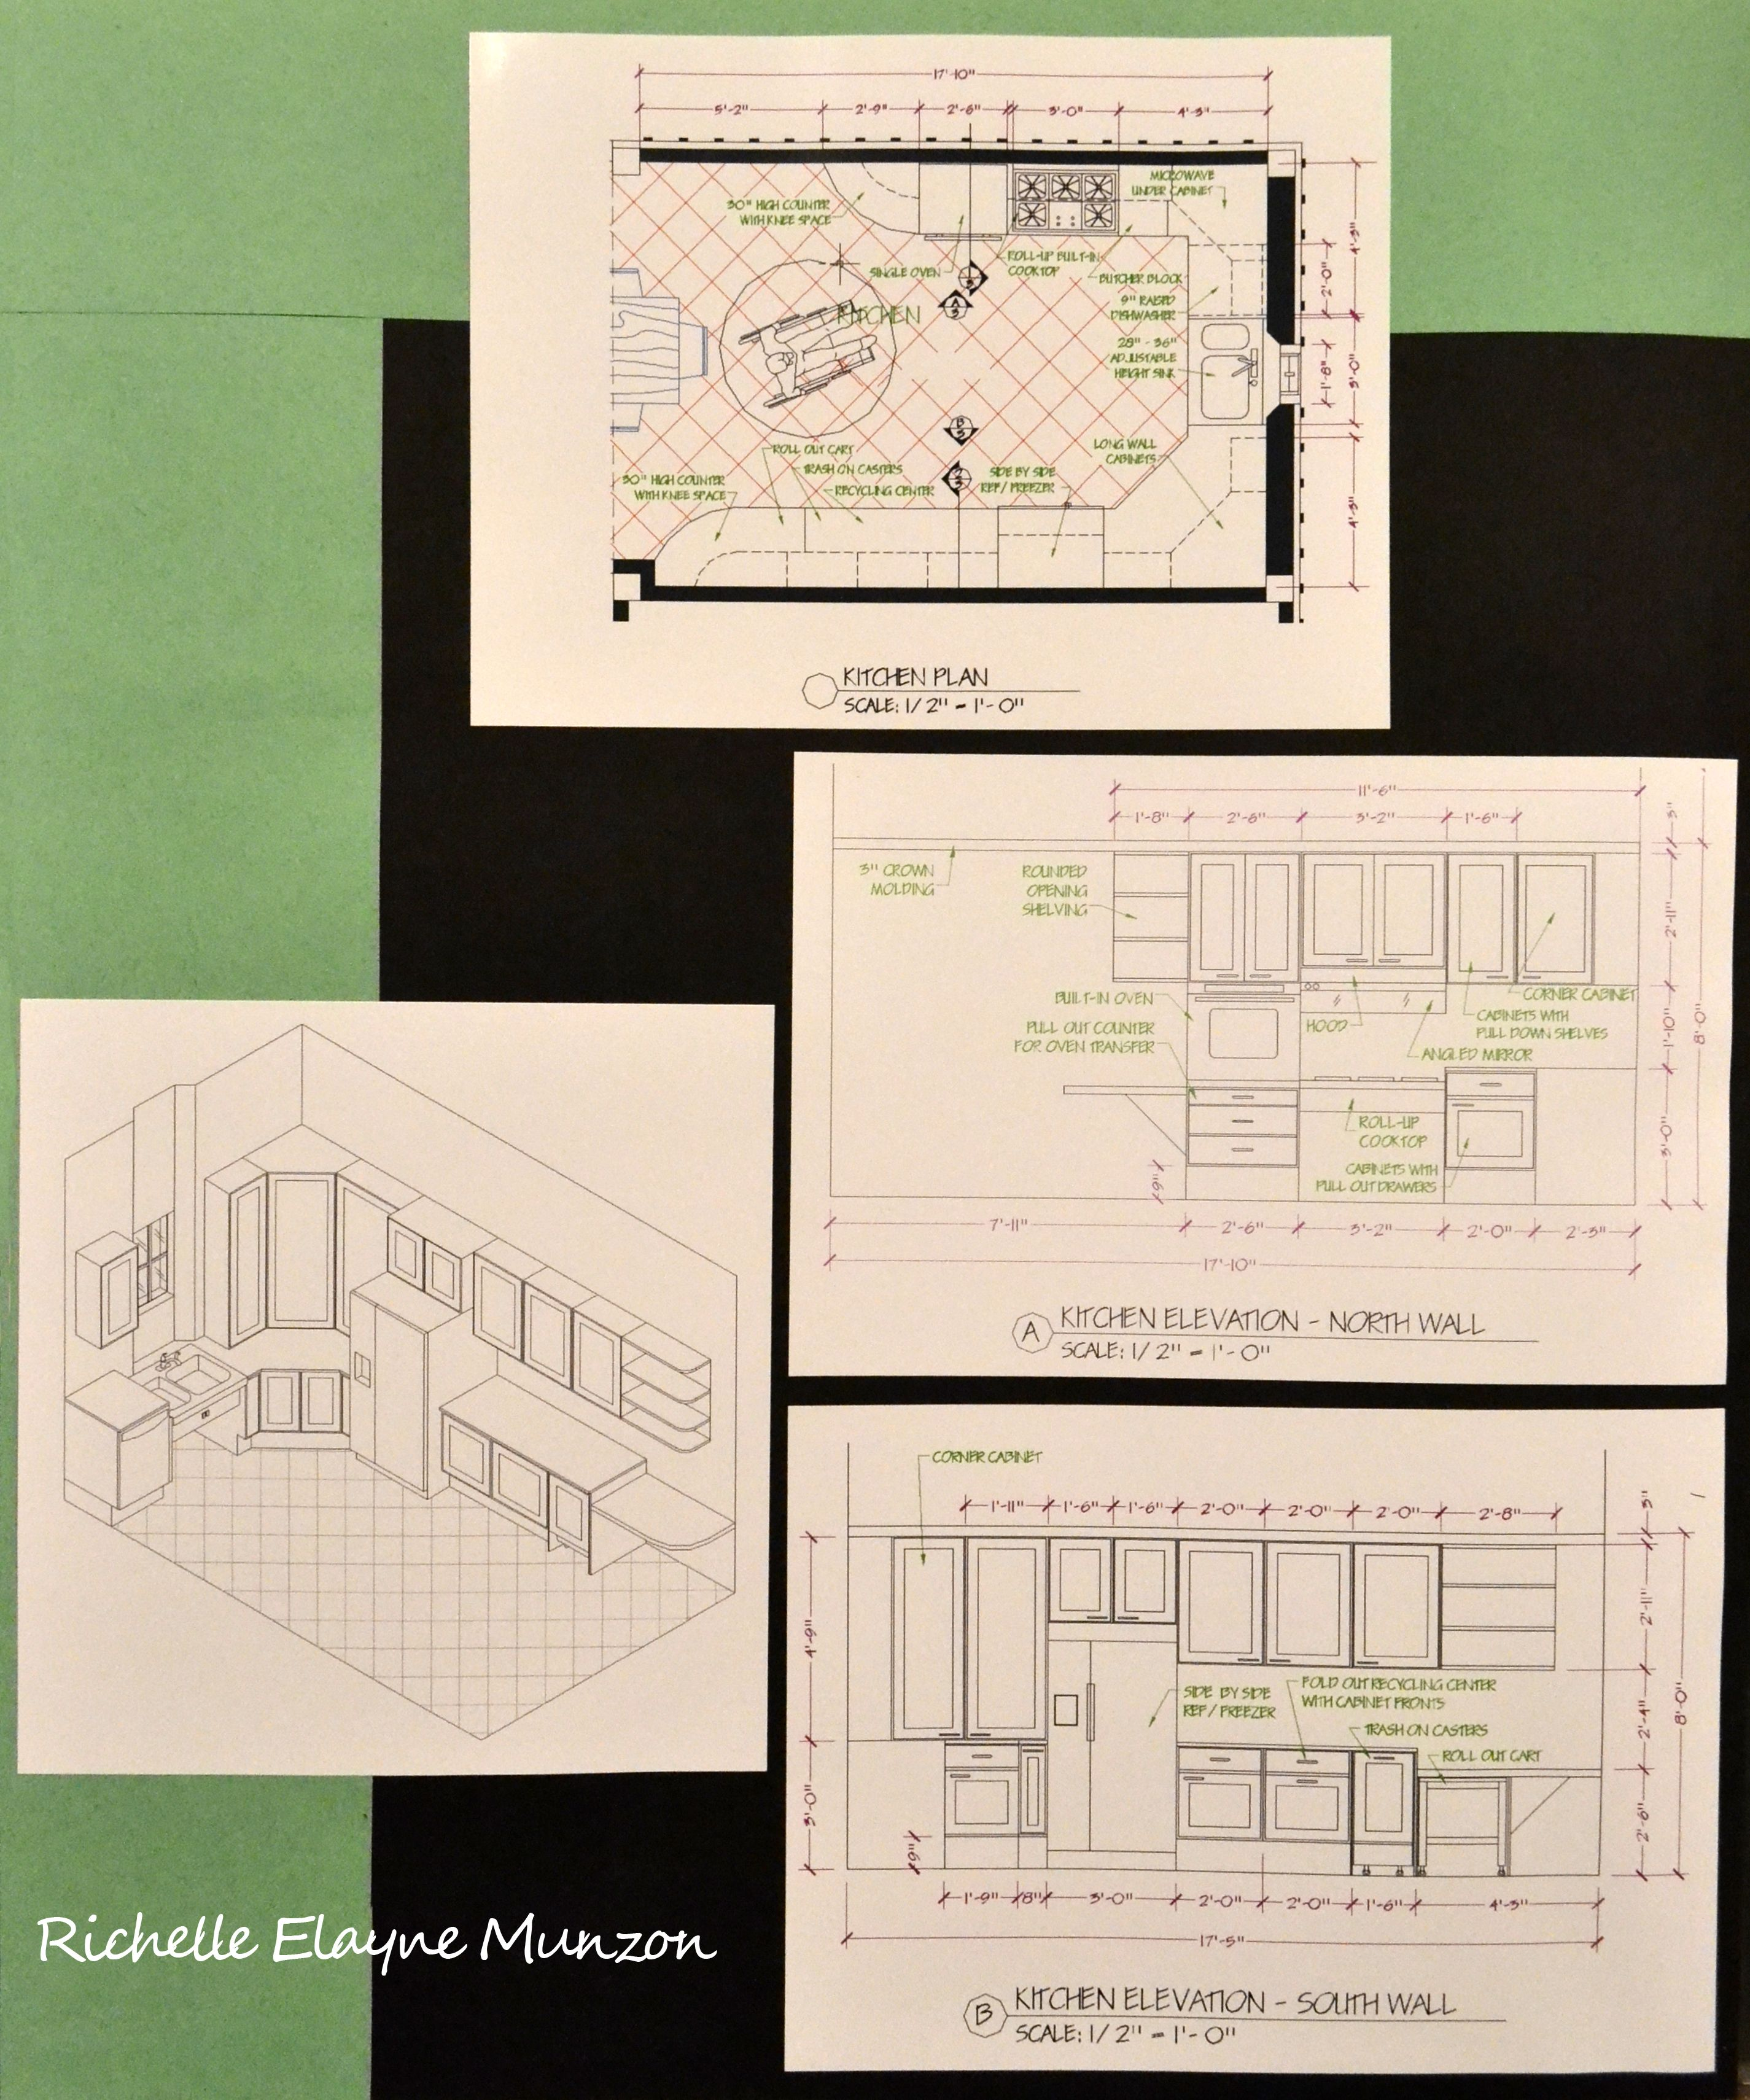 Autocad Floor Plan Elevation And Perspective Drawings By Richelle Elayne Munzon Kitchen Floor Plans How To Plan Floor Plans